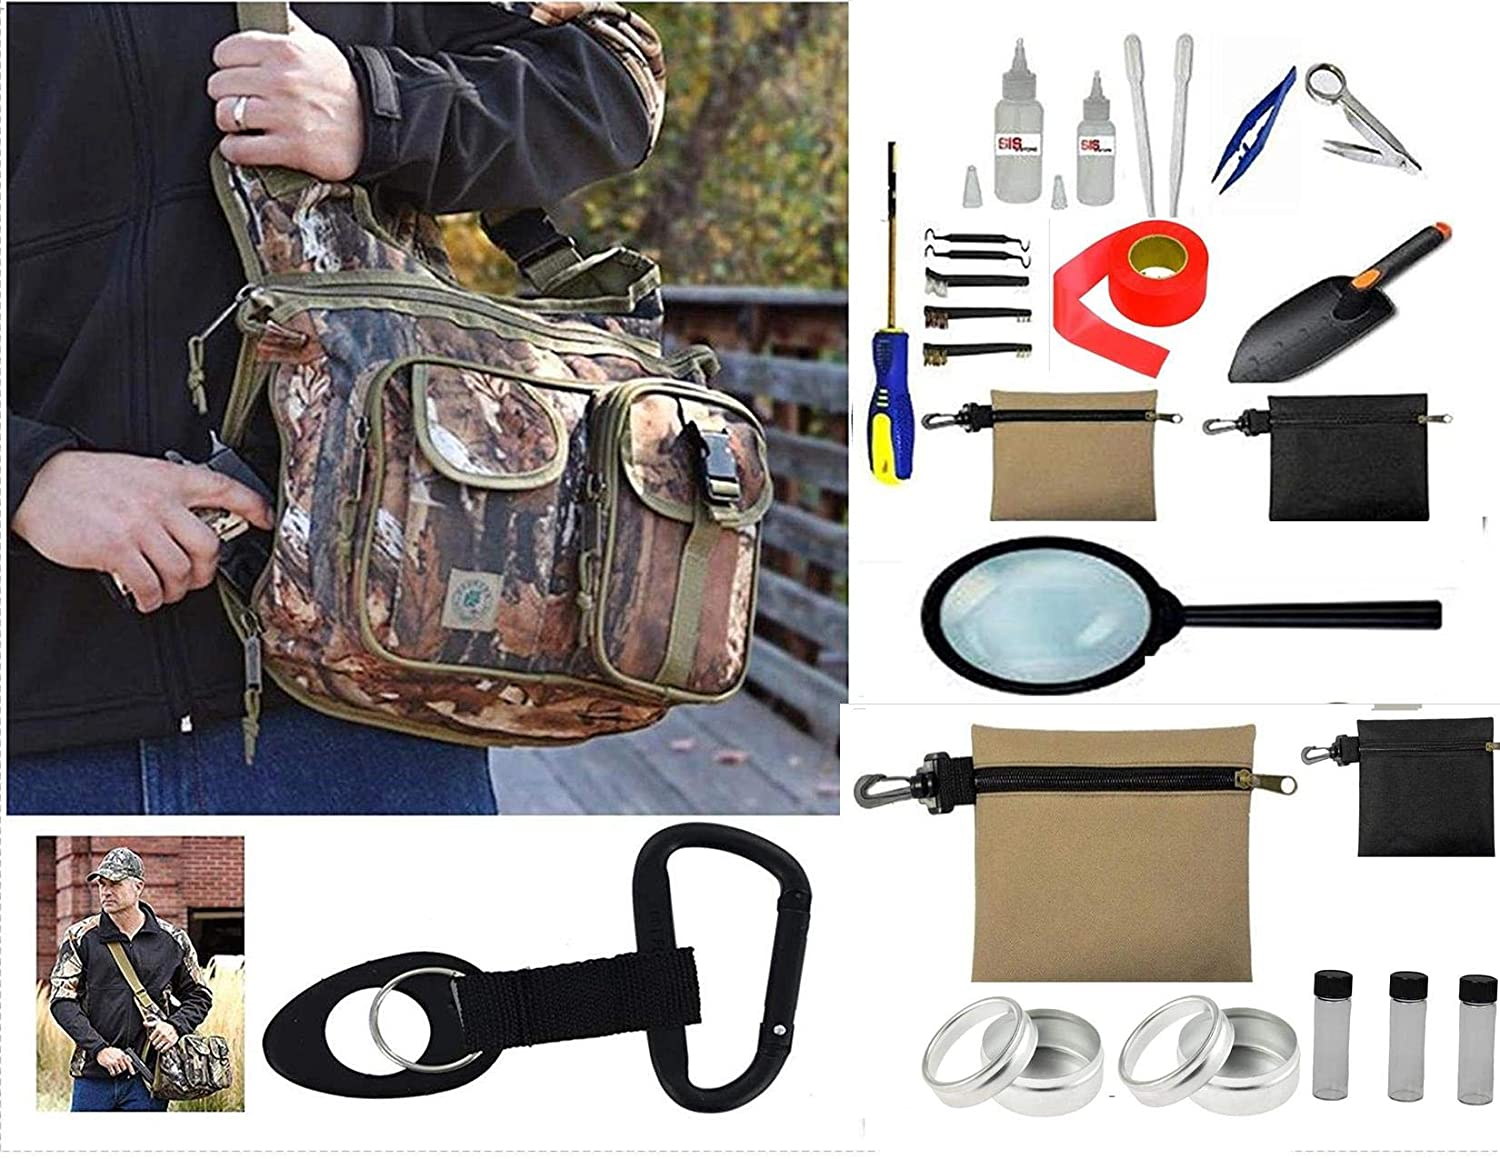 VAS First Response Treasure Hunters Large 17 Hobbyists Sling Pack Metal Detecting Gold Panning 22 Pc Accessory Kit Wildland CAMO Bag